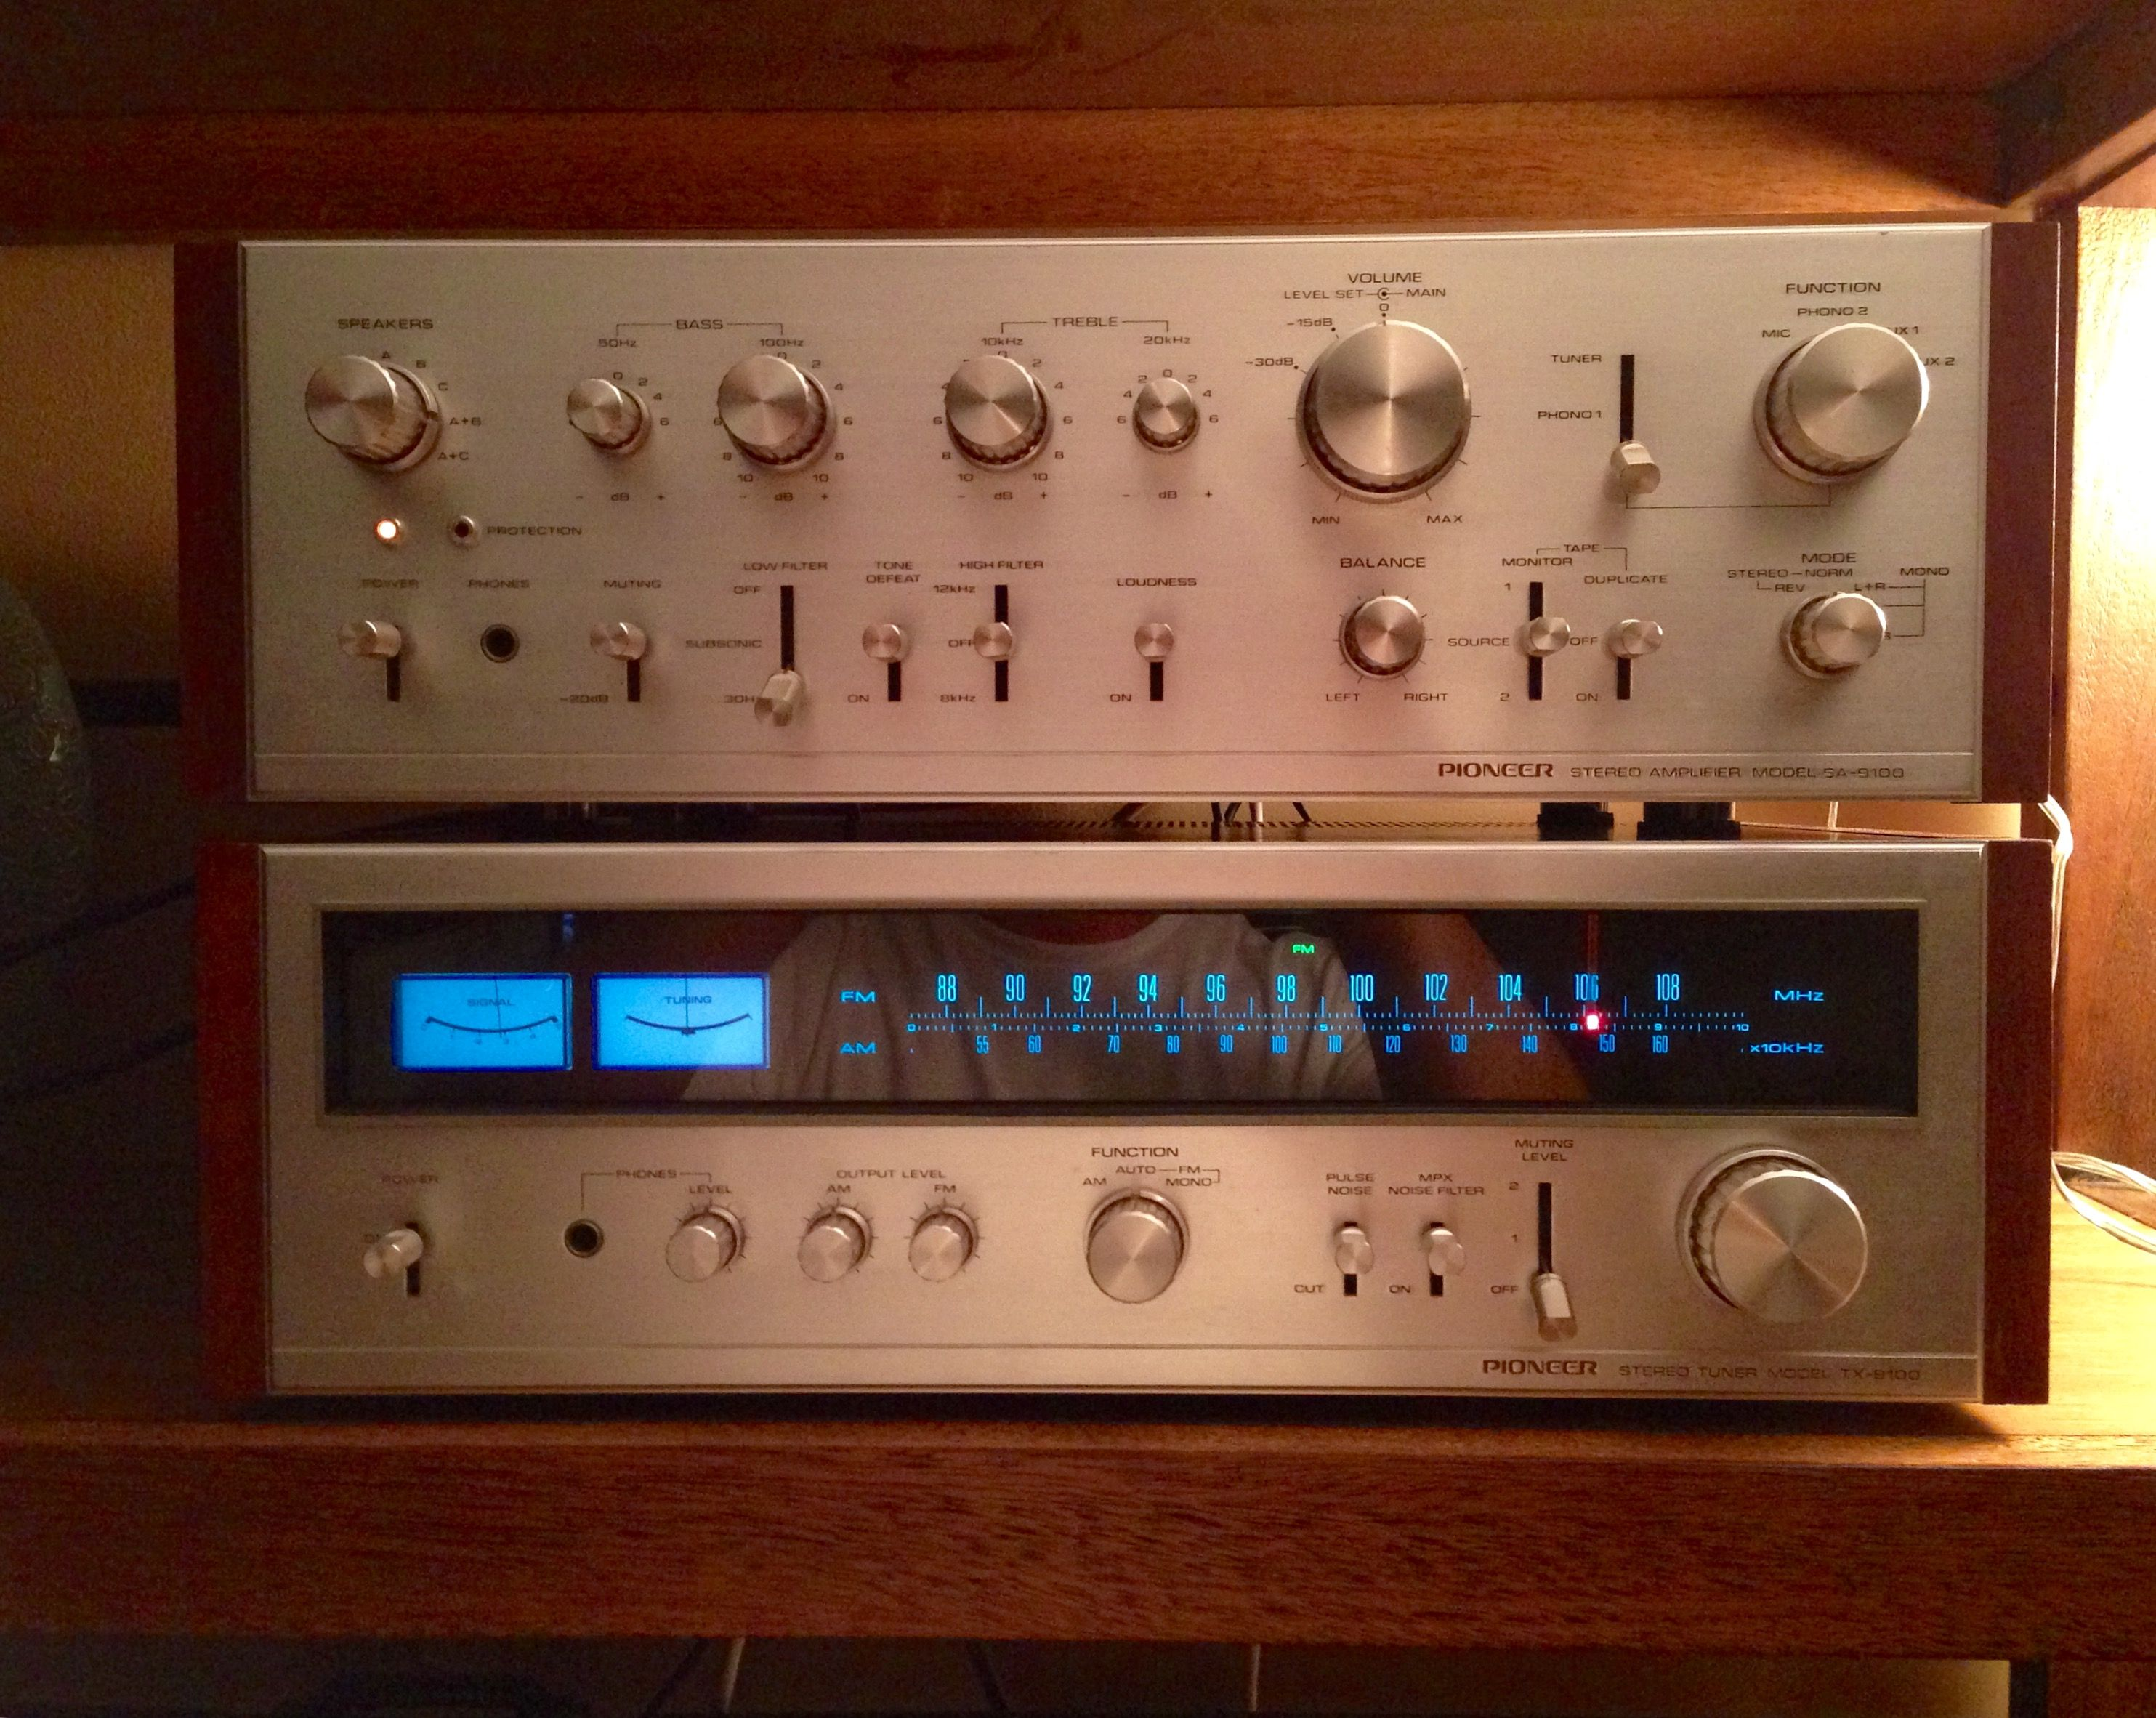 Circa 1973 Pioneer SA9100 / TX9100 amplifier and tuner. I just had this vintage piece restored and she sounds beautiful!